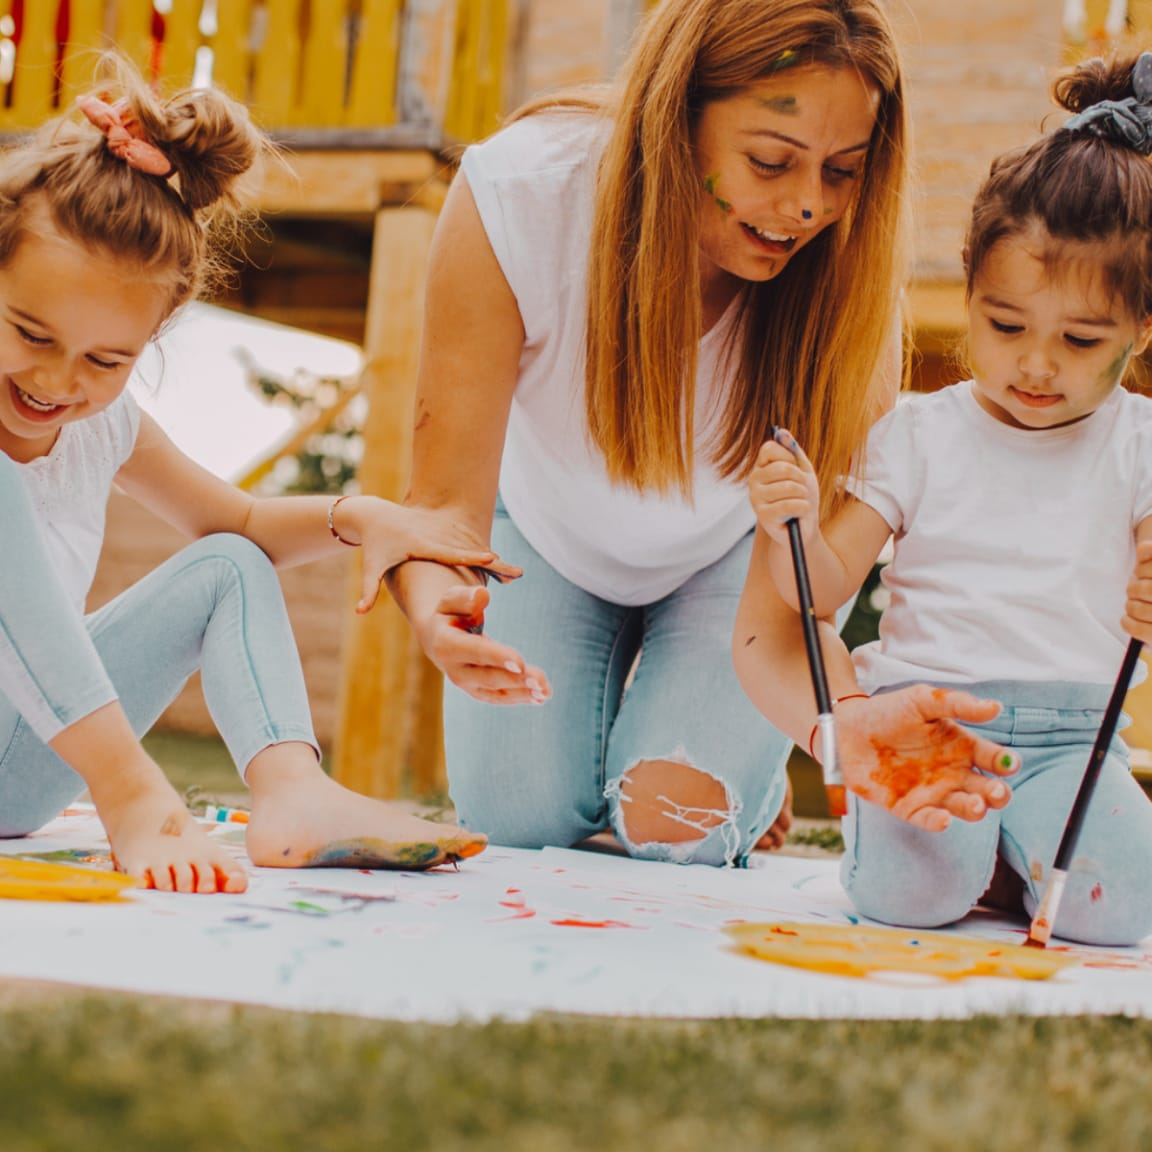 DIY Series: Dive into these kids' crafternoon activities